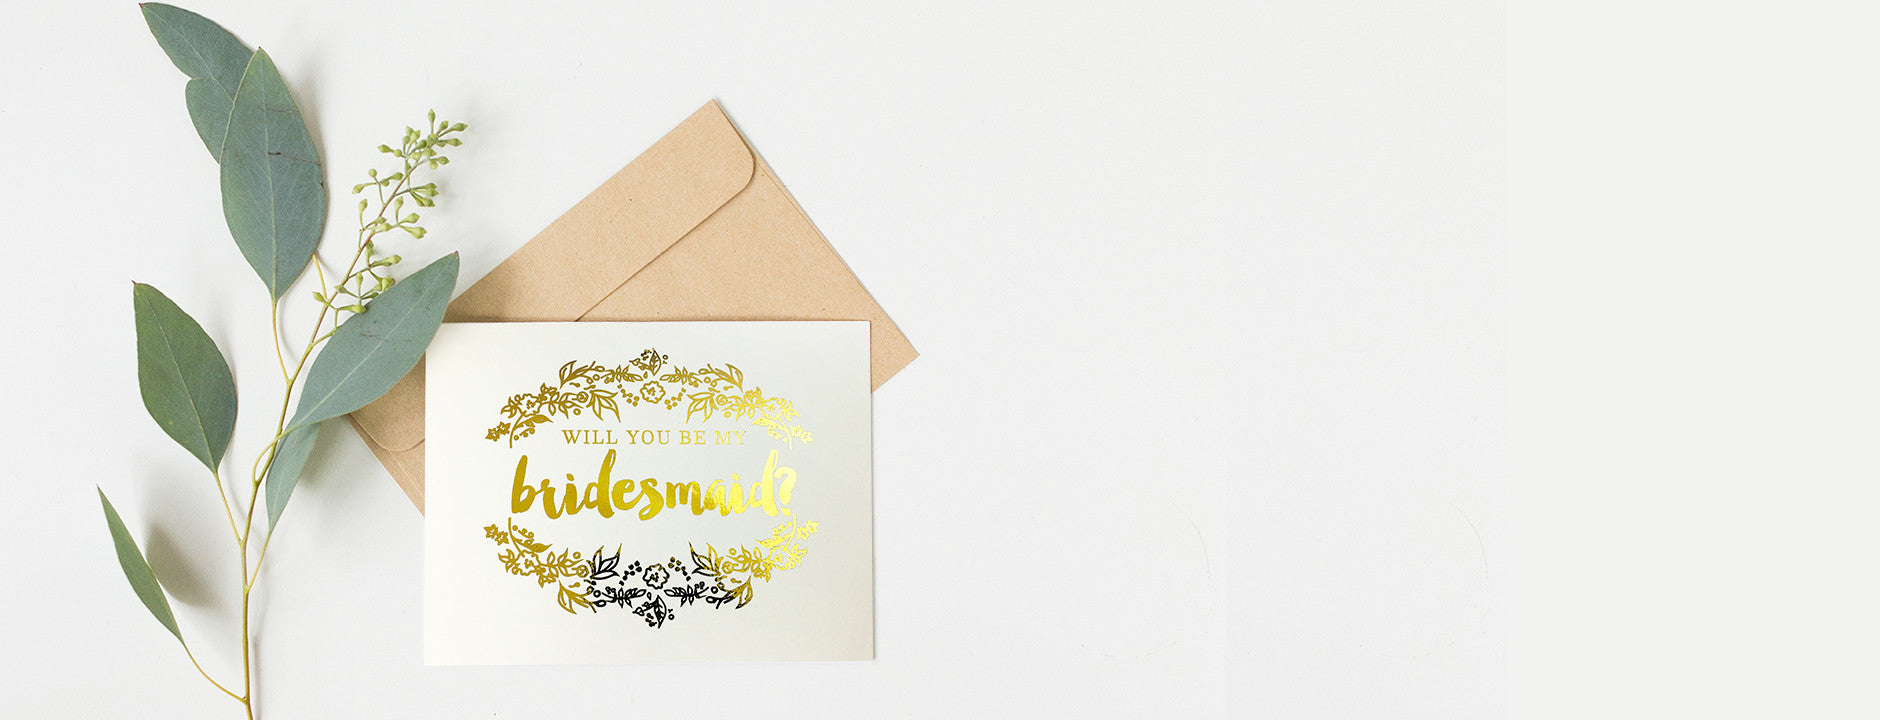 Real Gold Foil Bridesmaid Cards